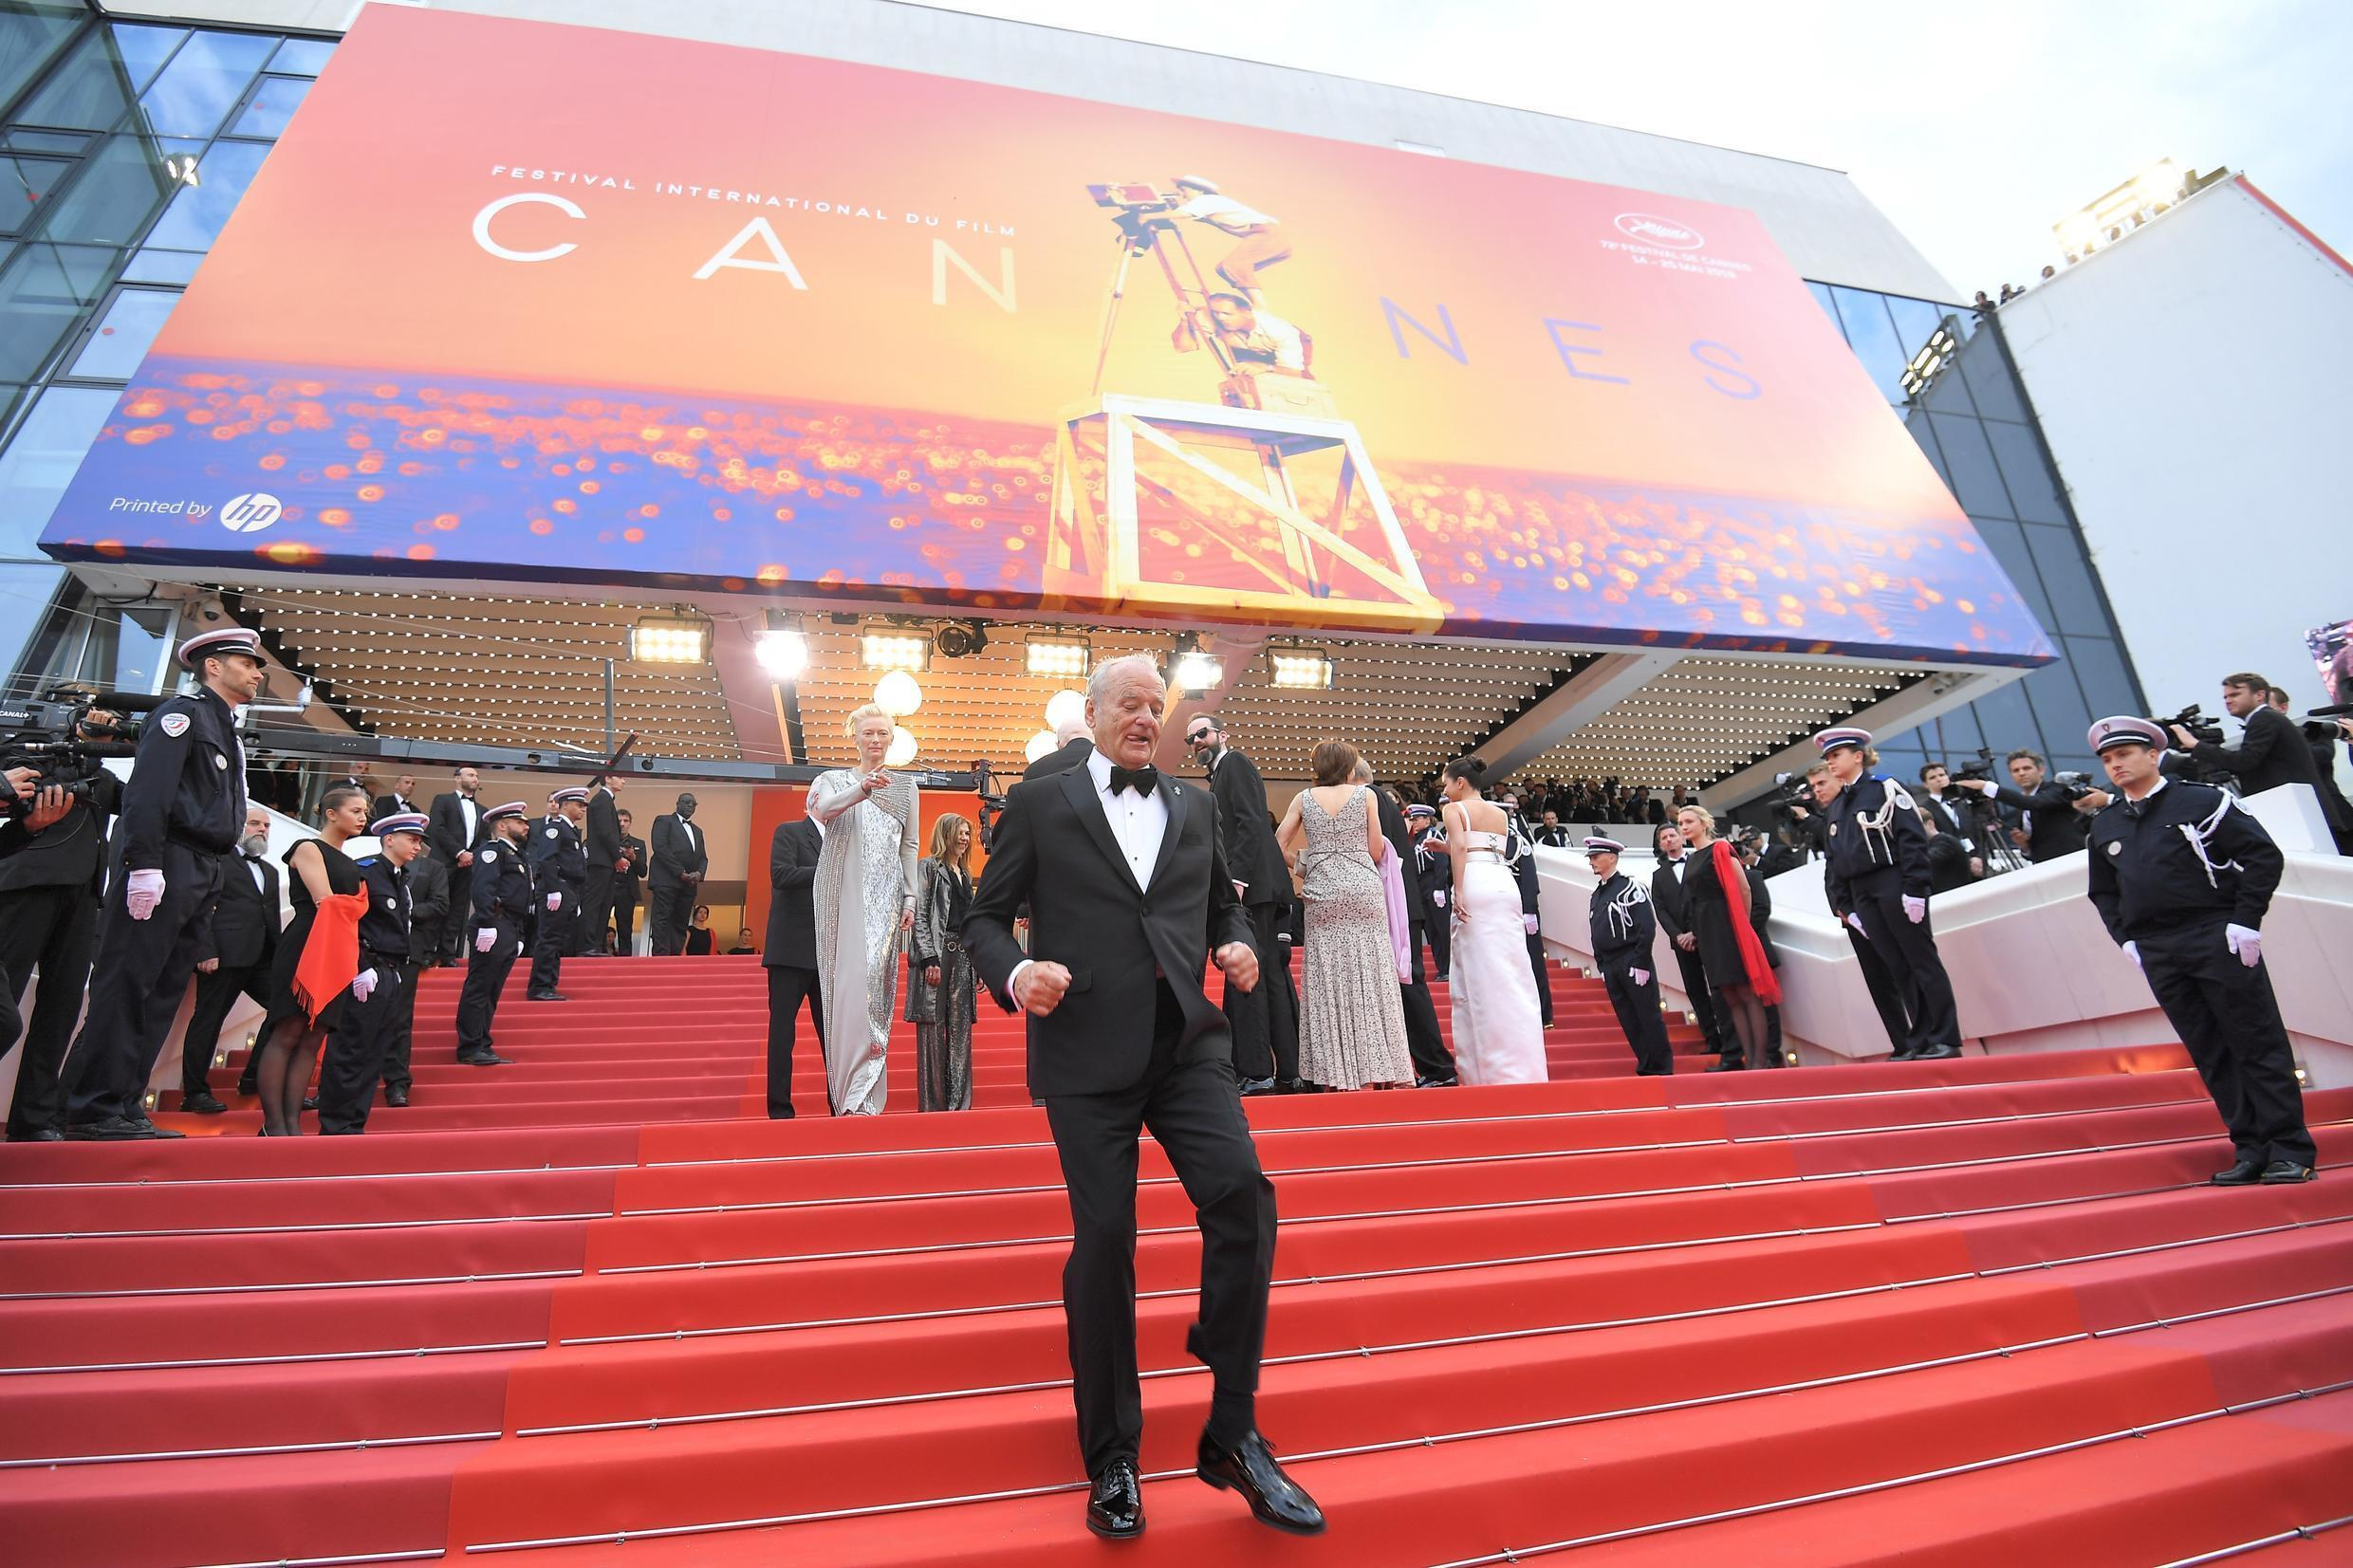 """US actor Bill Murray at the 2019 edition of the Cannes Film Festival, which will contribute entries to """"We Are One: A Global Film Festival"""""""